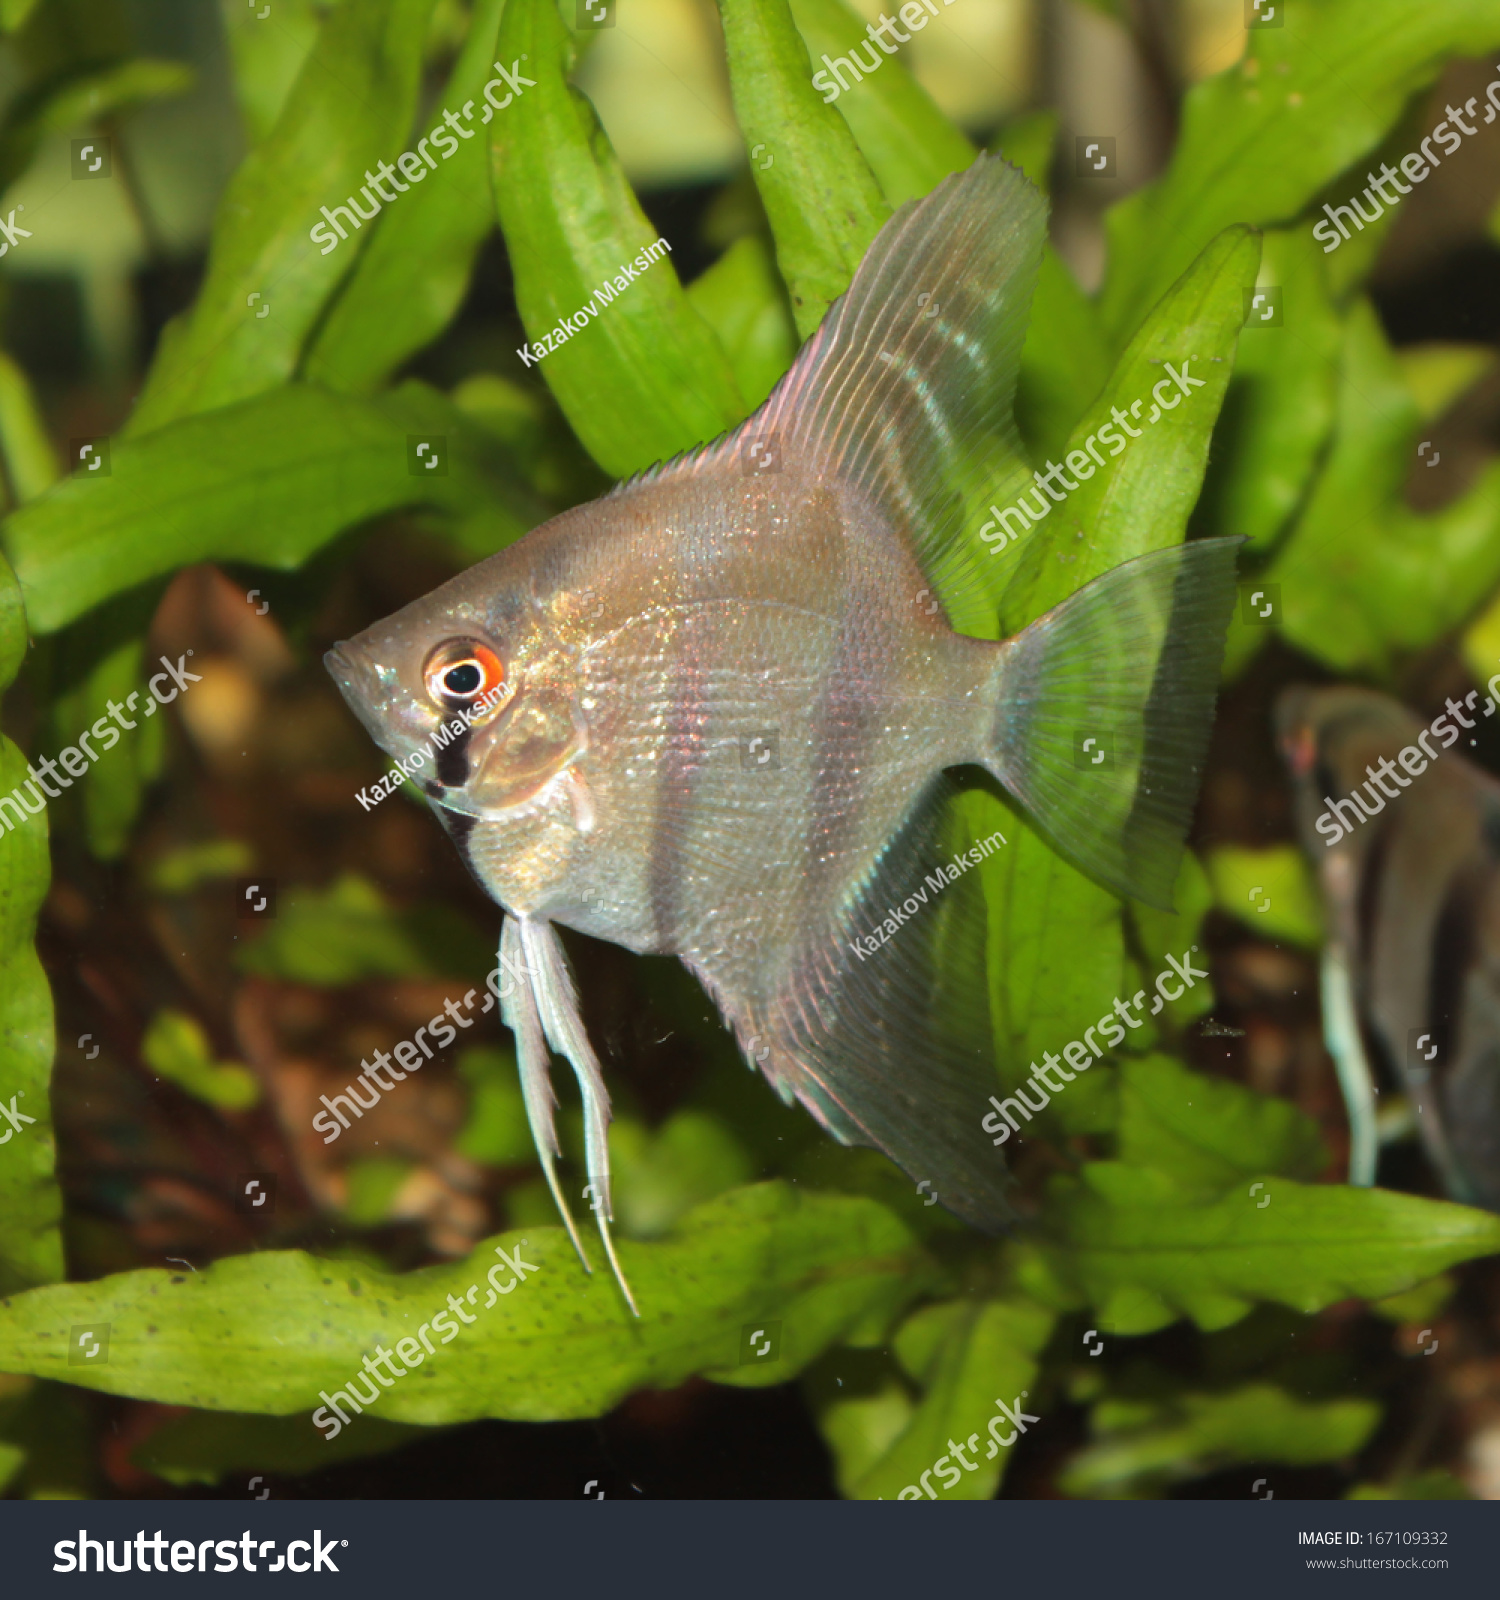 Freshwater aquarium fish angelfish - Altum Angelfish Freshwater Aquarium Fish Stock Photo 167109332 Shutterstock